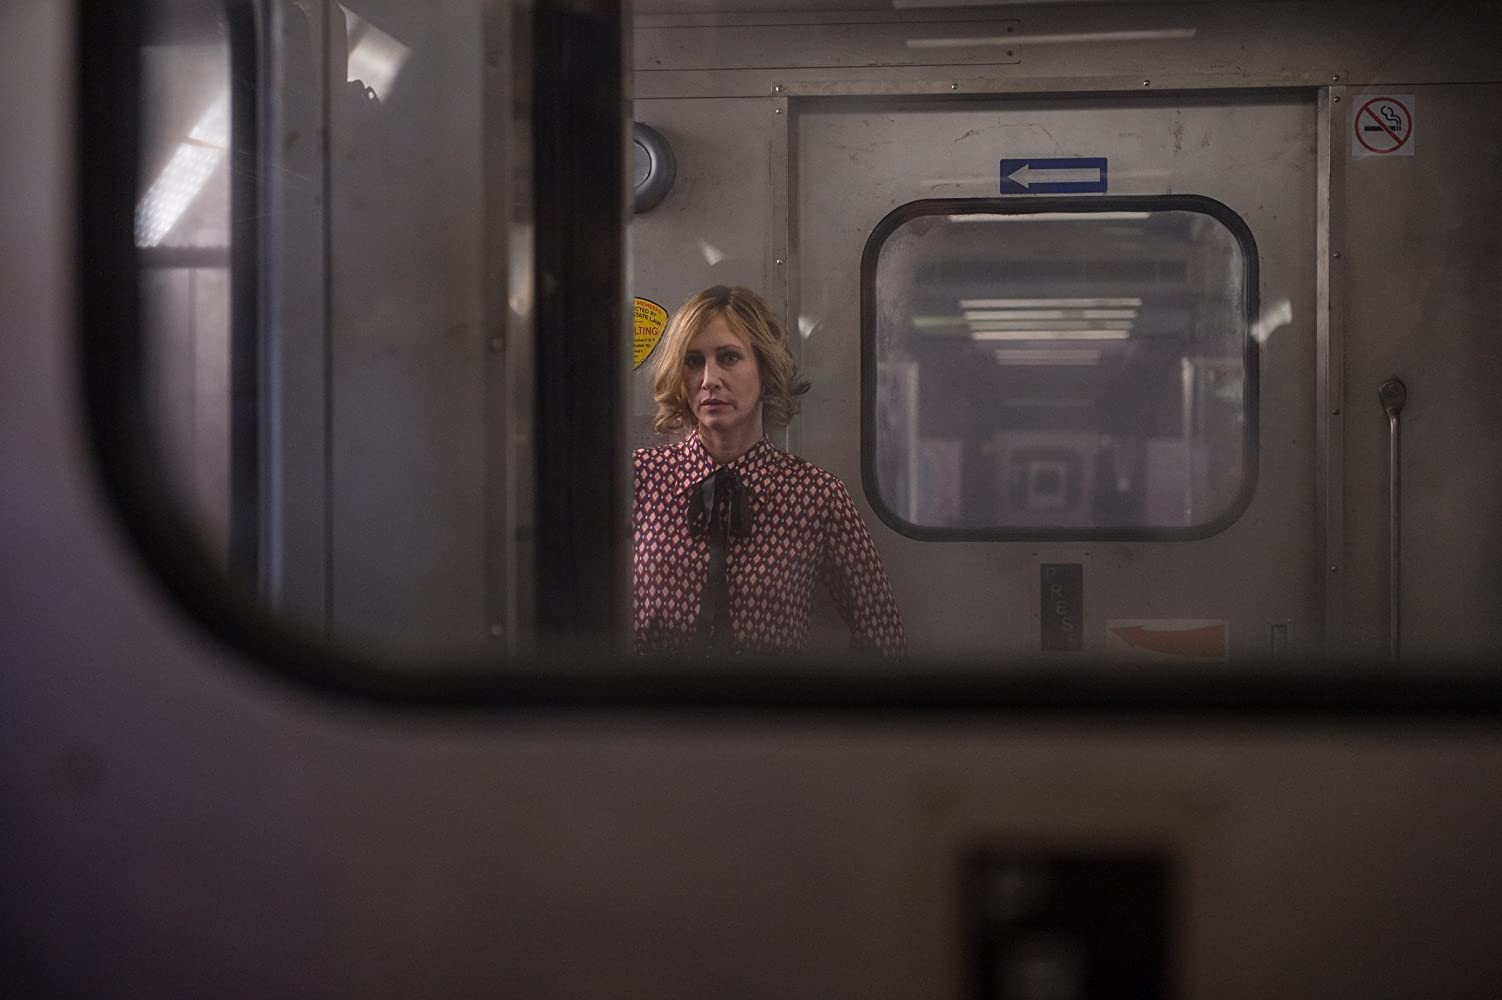 LUomo Sul Treno (The Commuter) screenshot 1